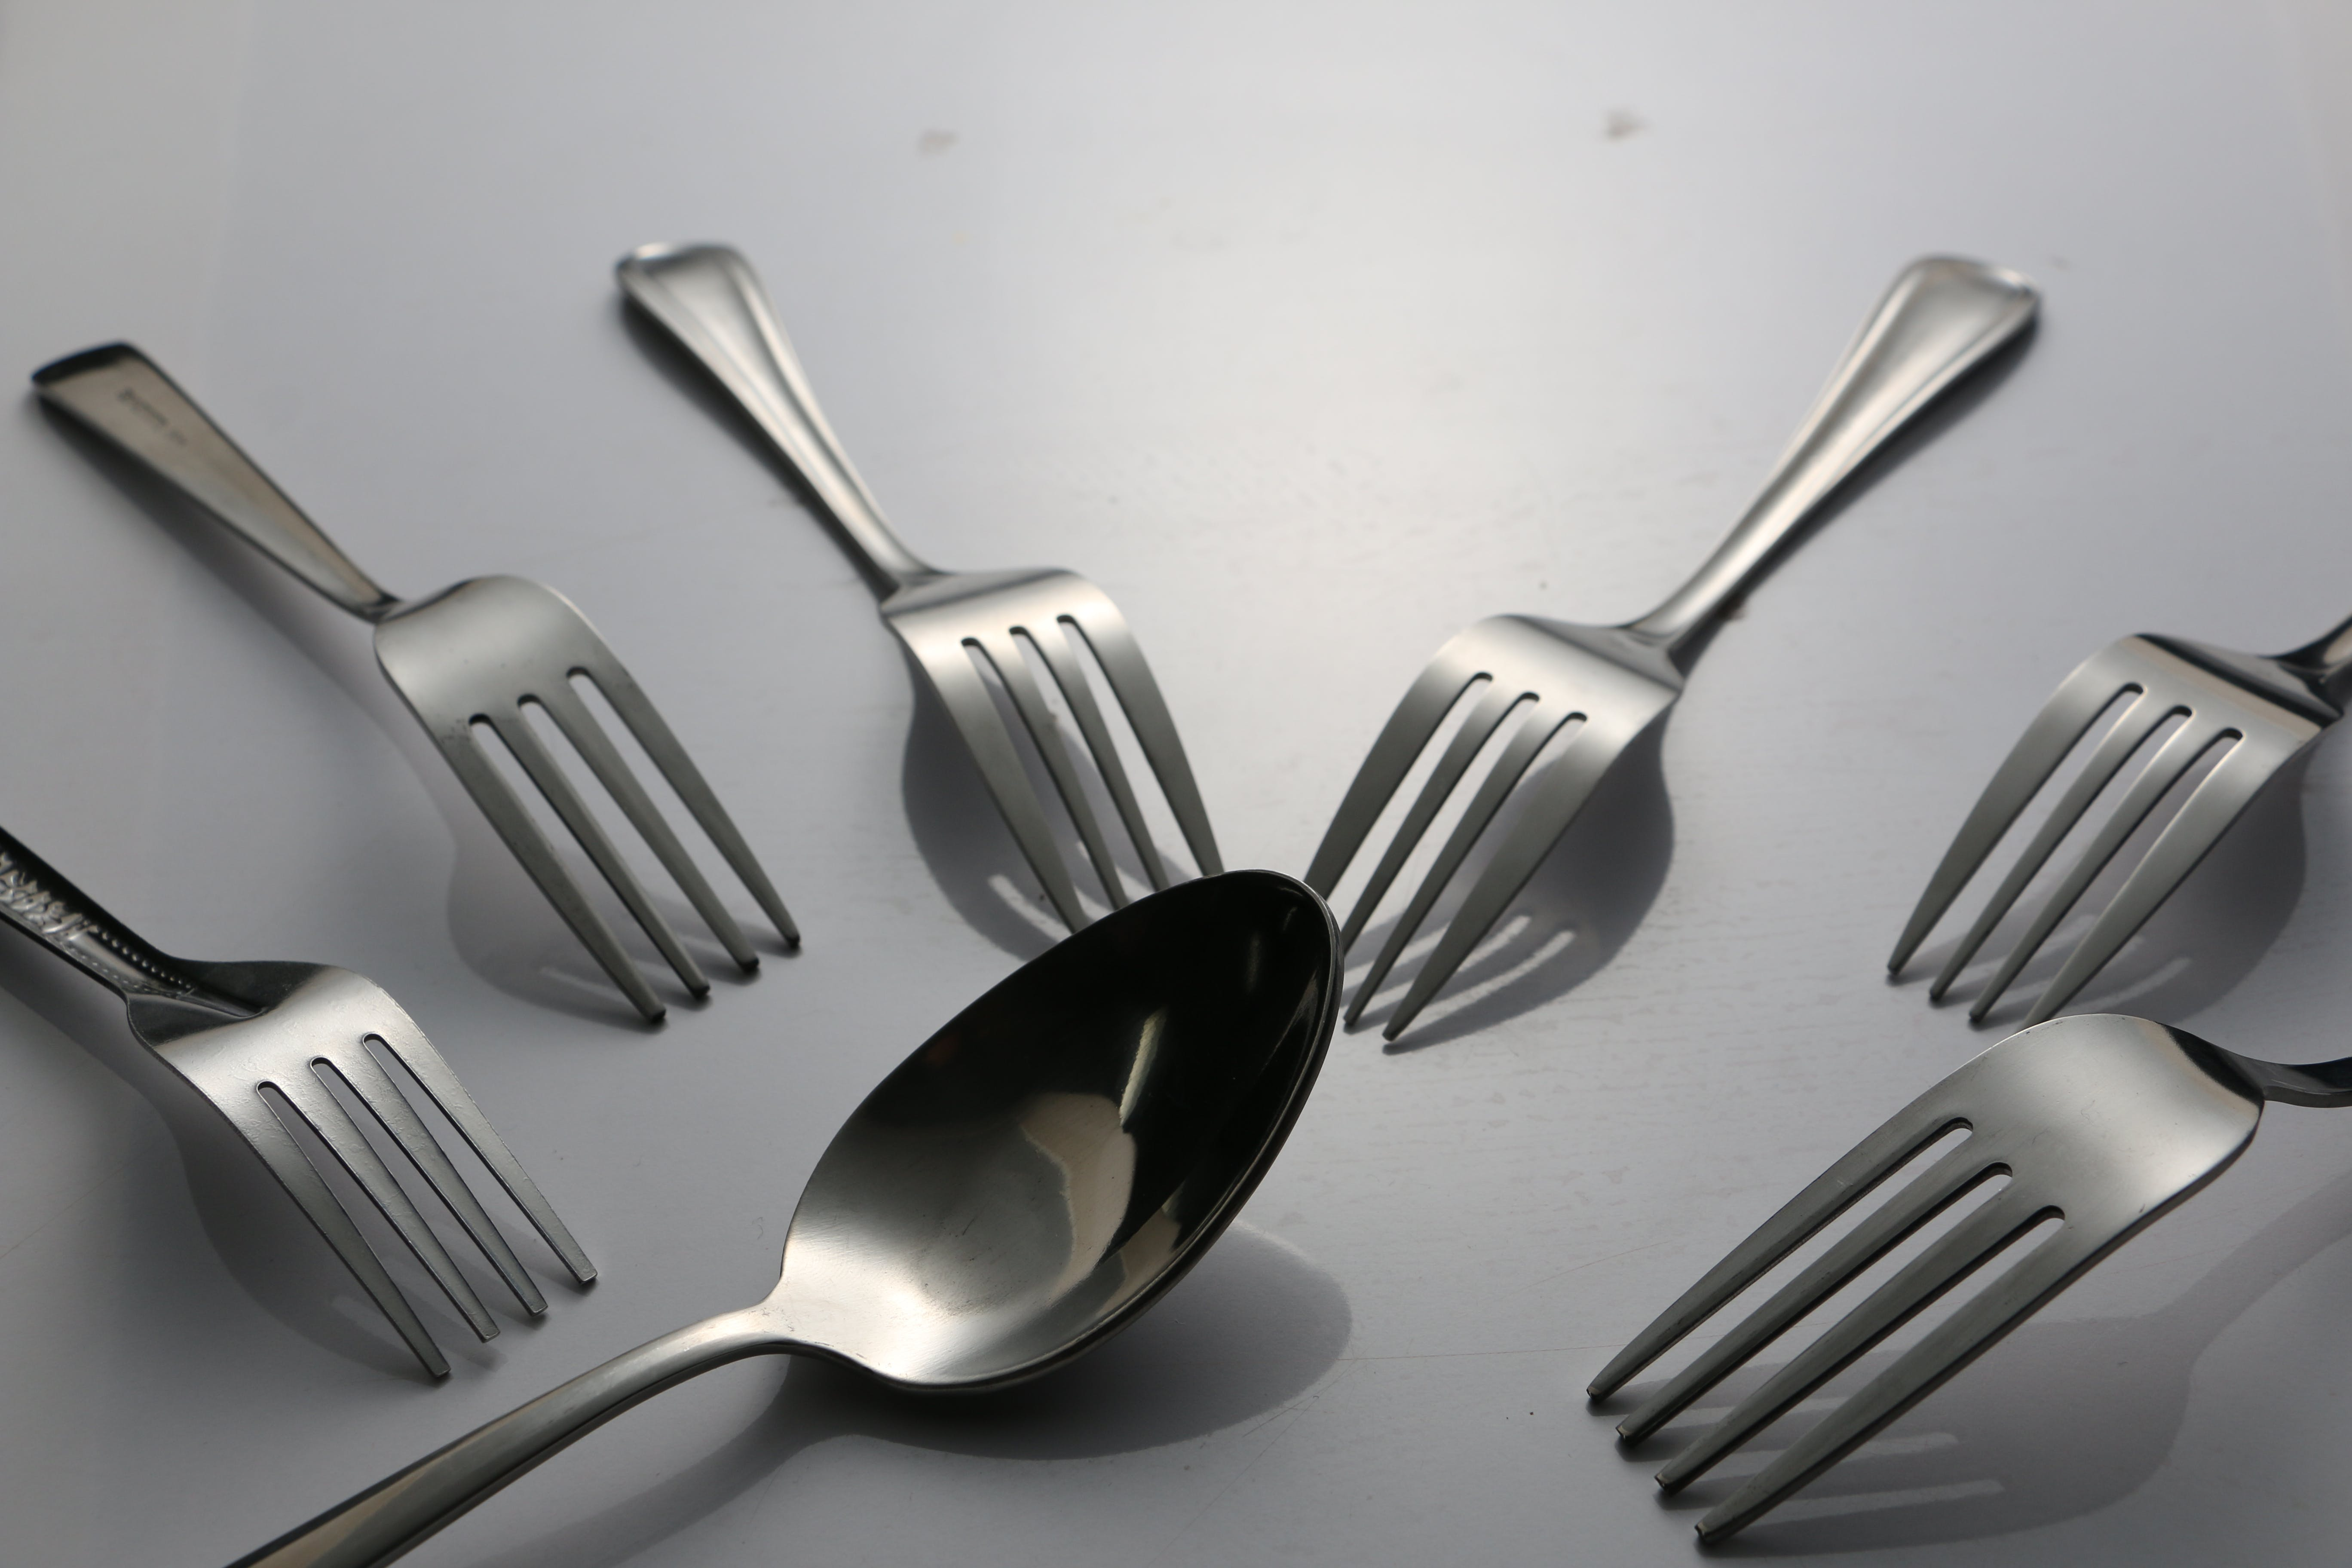 Free stock photo of spoon and fork